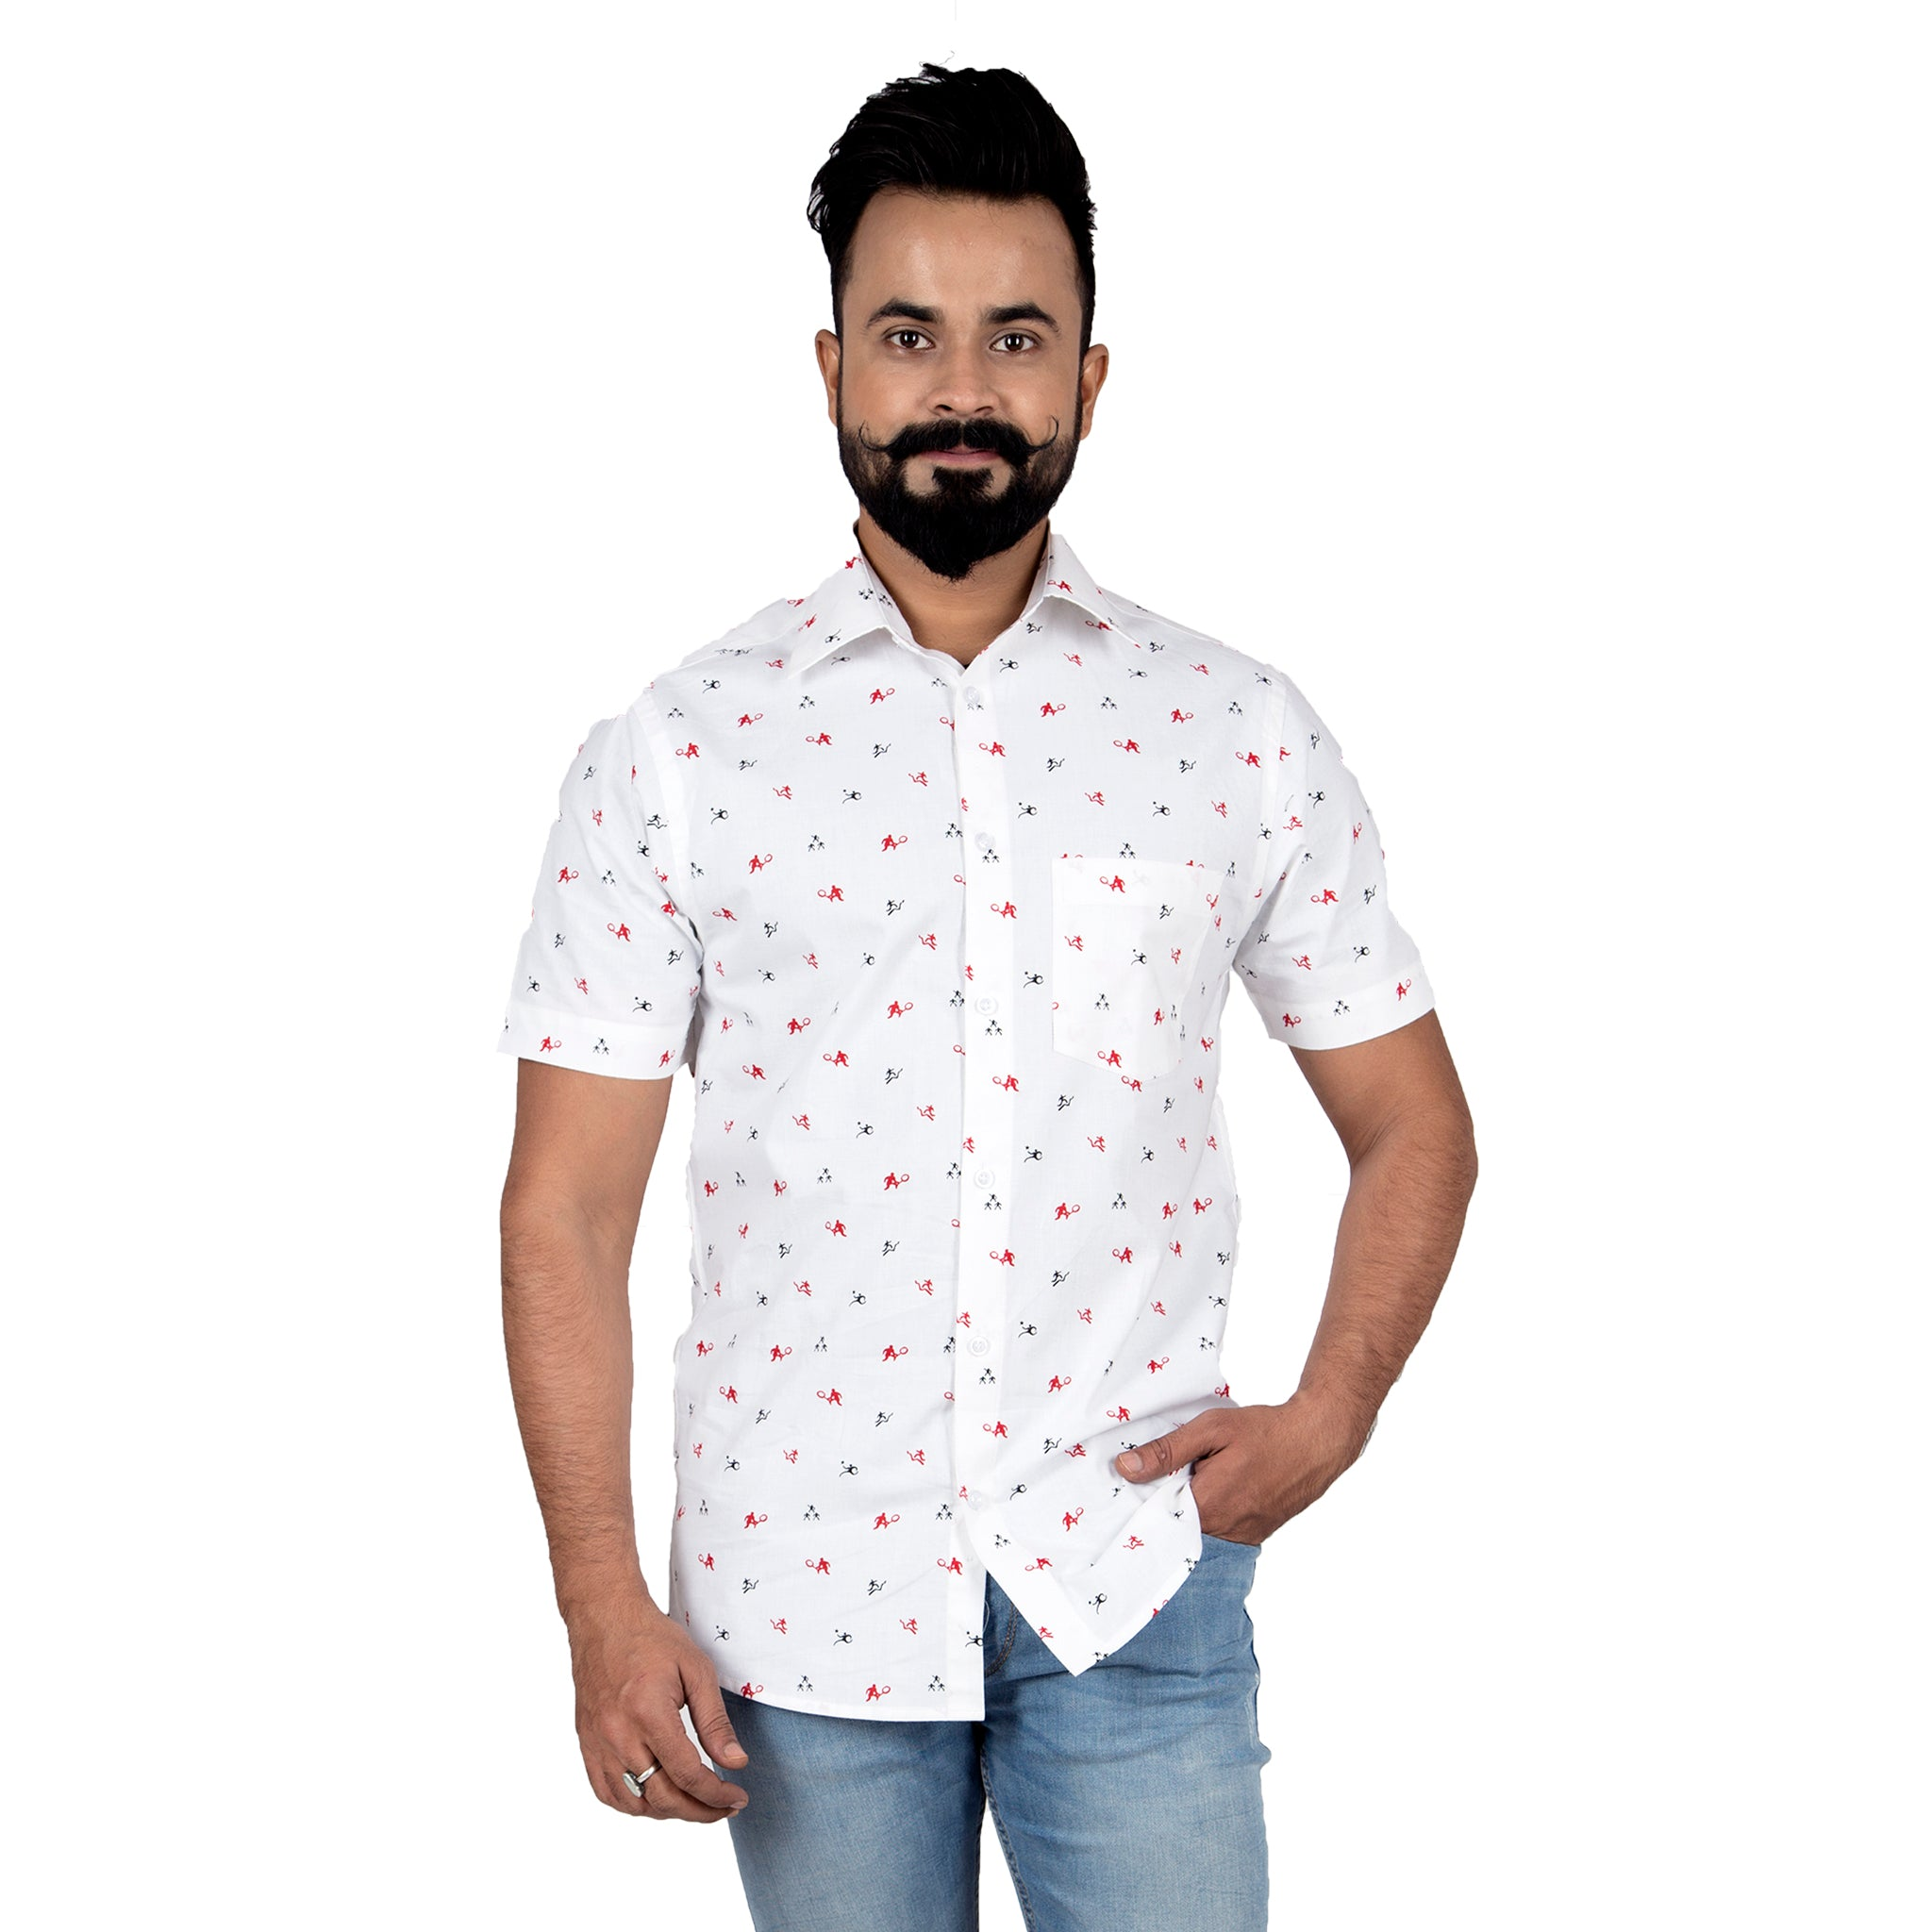 Sports Print Mens Shirt The Feel Good Studio